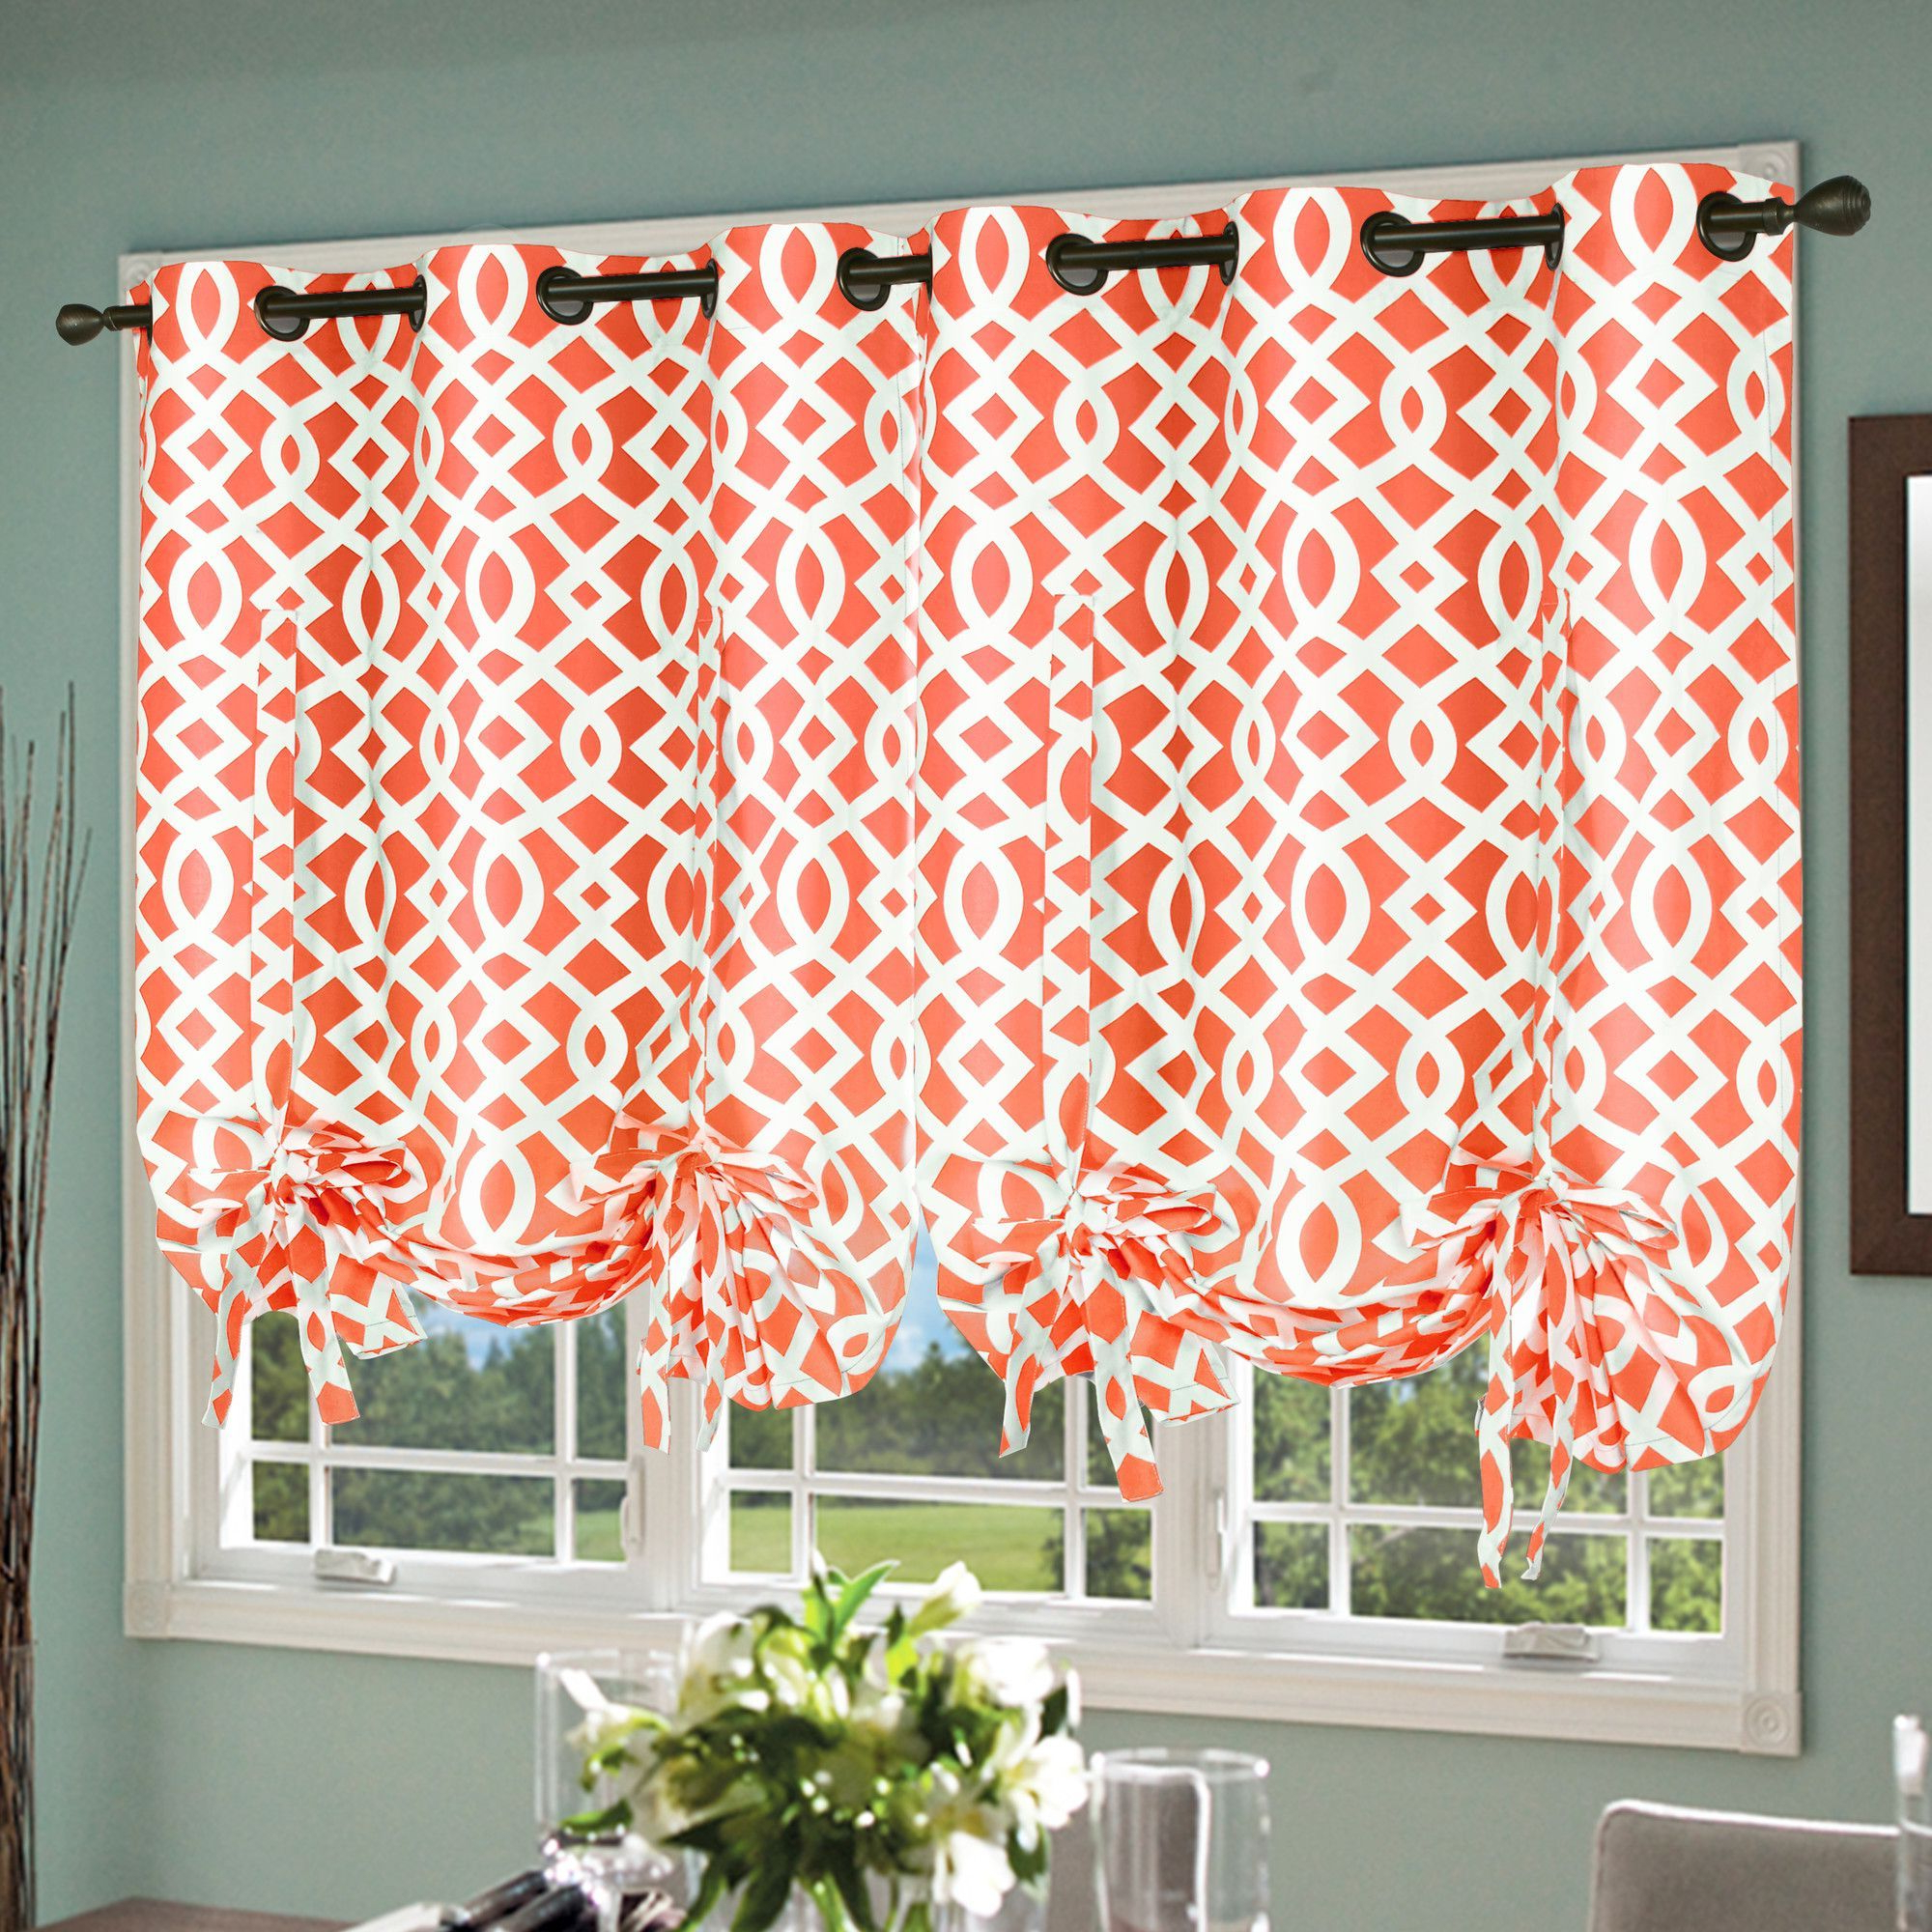 Thermalogic Trellis Tie Up Curtain Single Panel & Reviews In Fashionable Prescott Insulated Tie Up Window Shade (View 13 of 20)